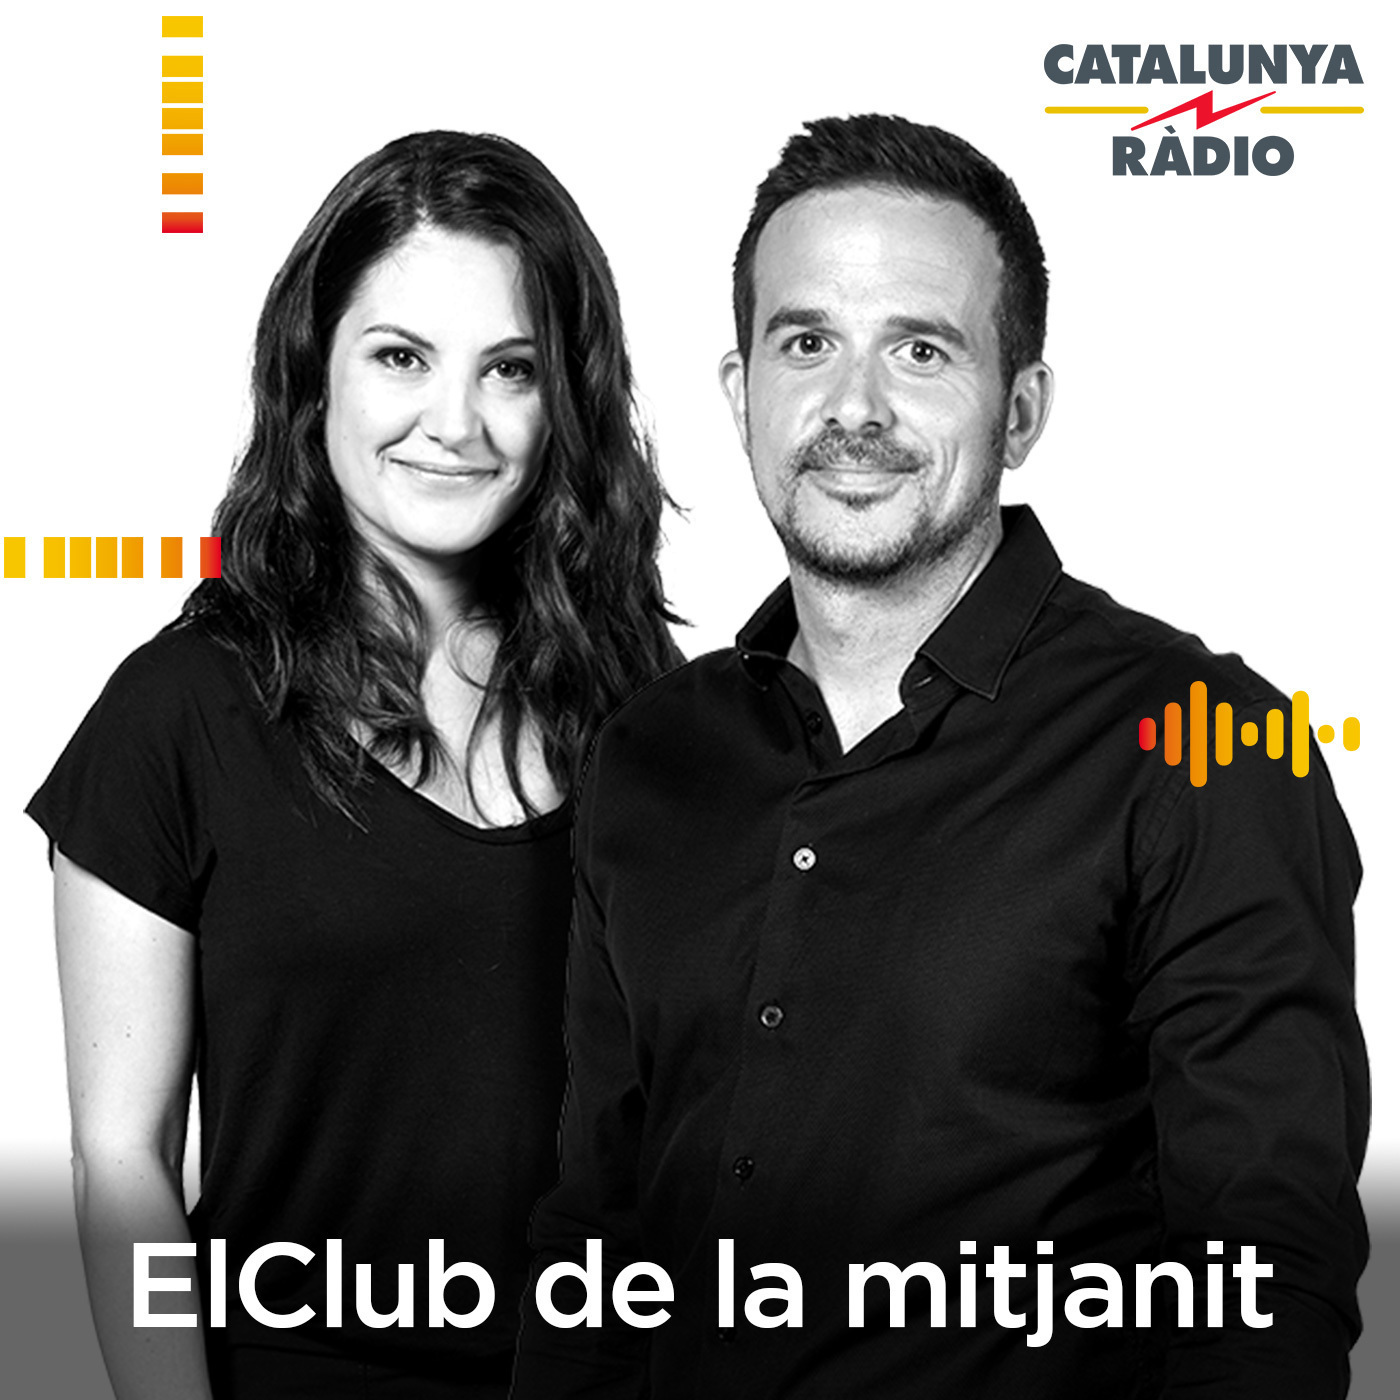 El club de la mitjanit - HOME EDITION - 22/04/2020